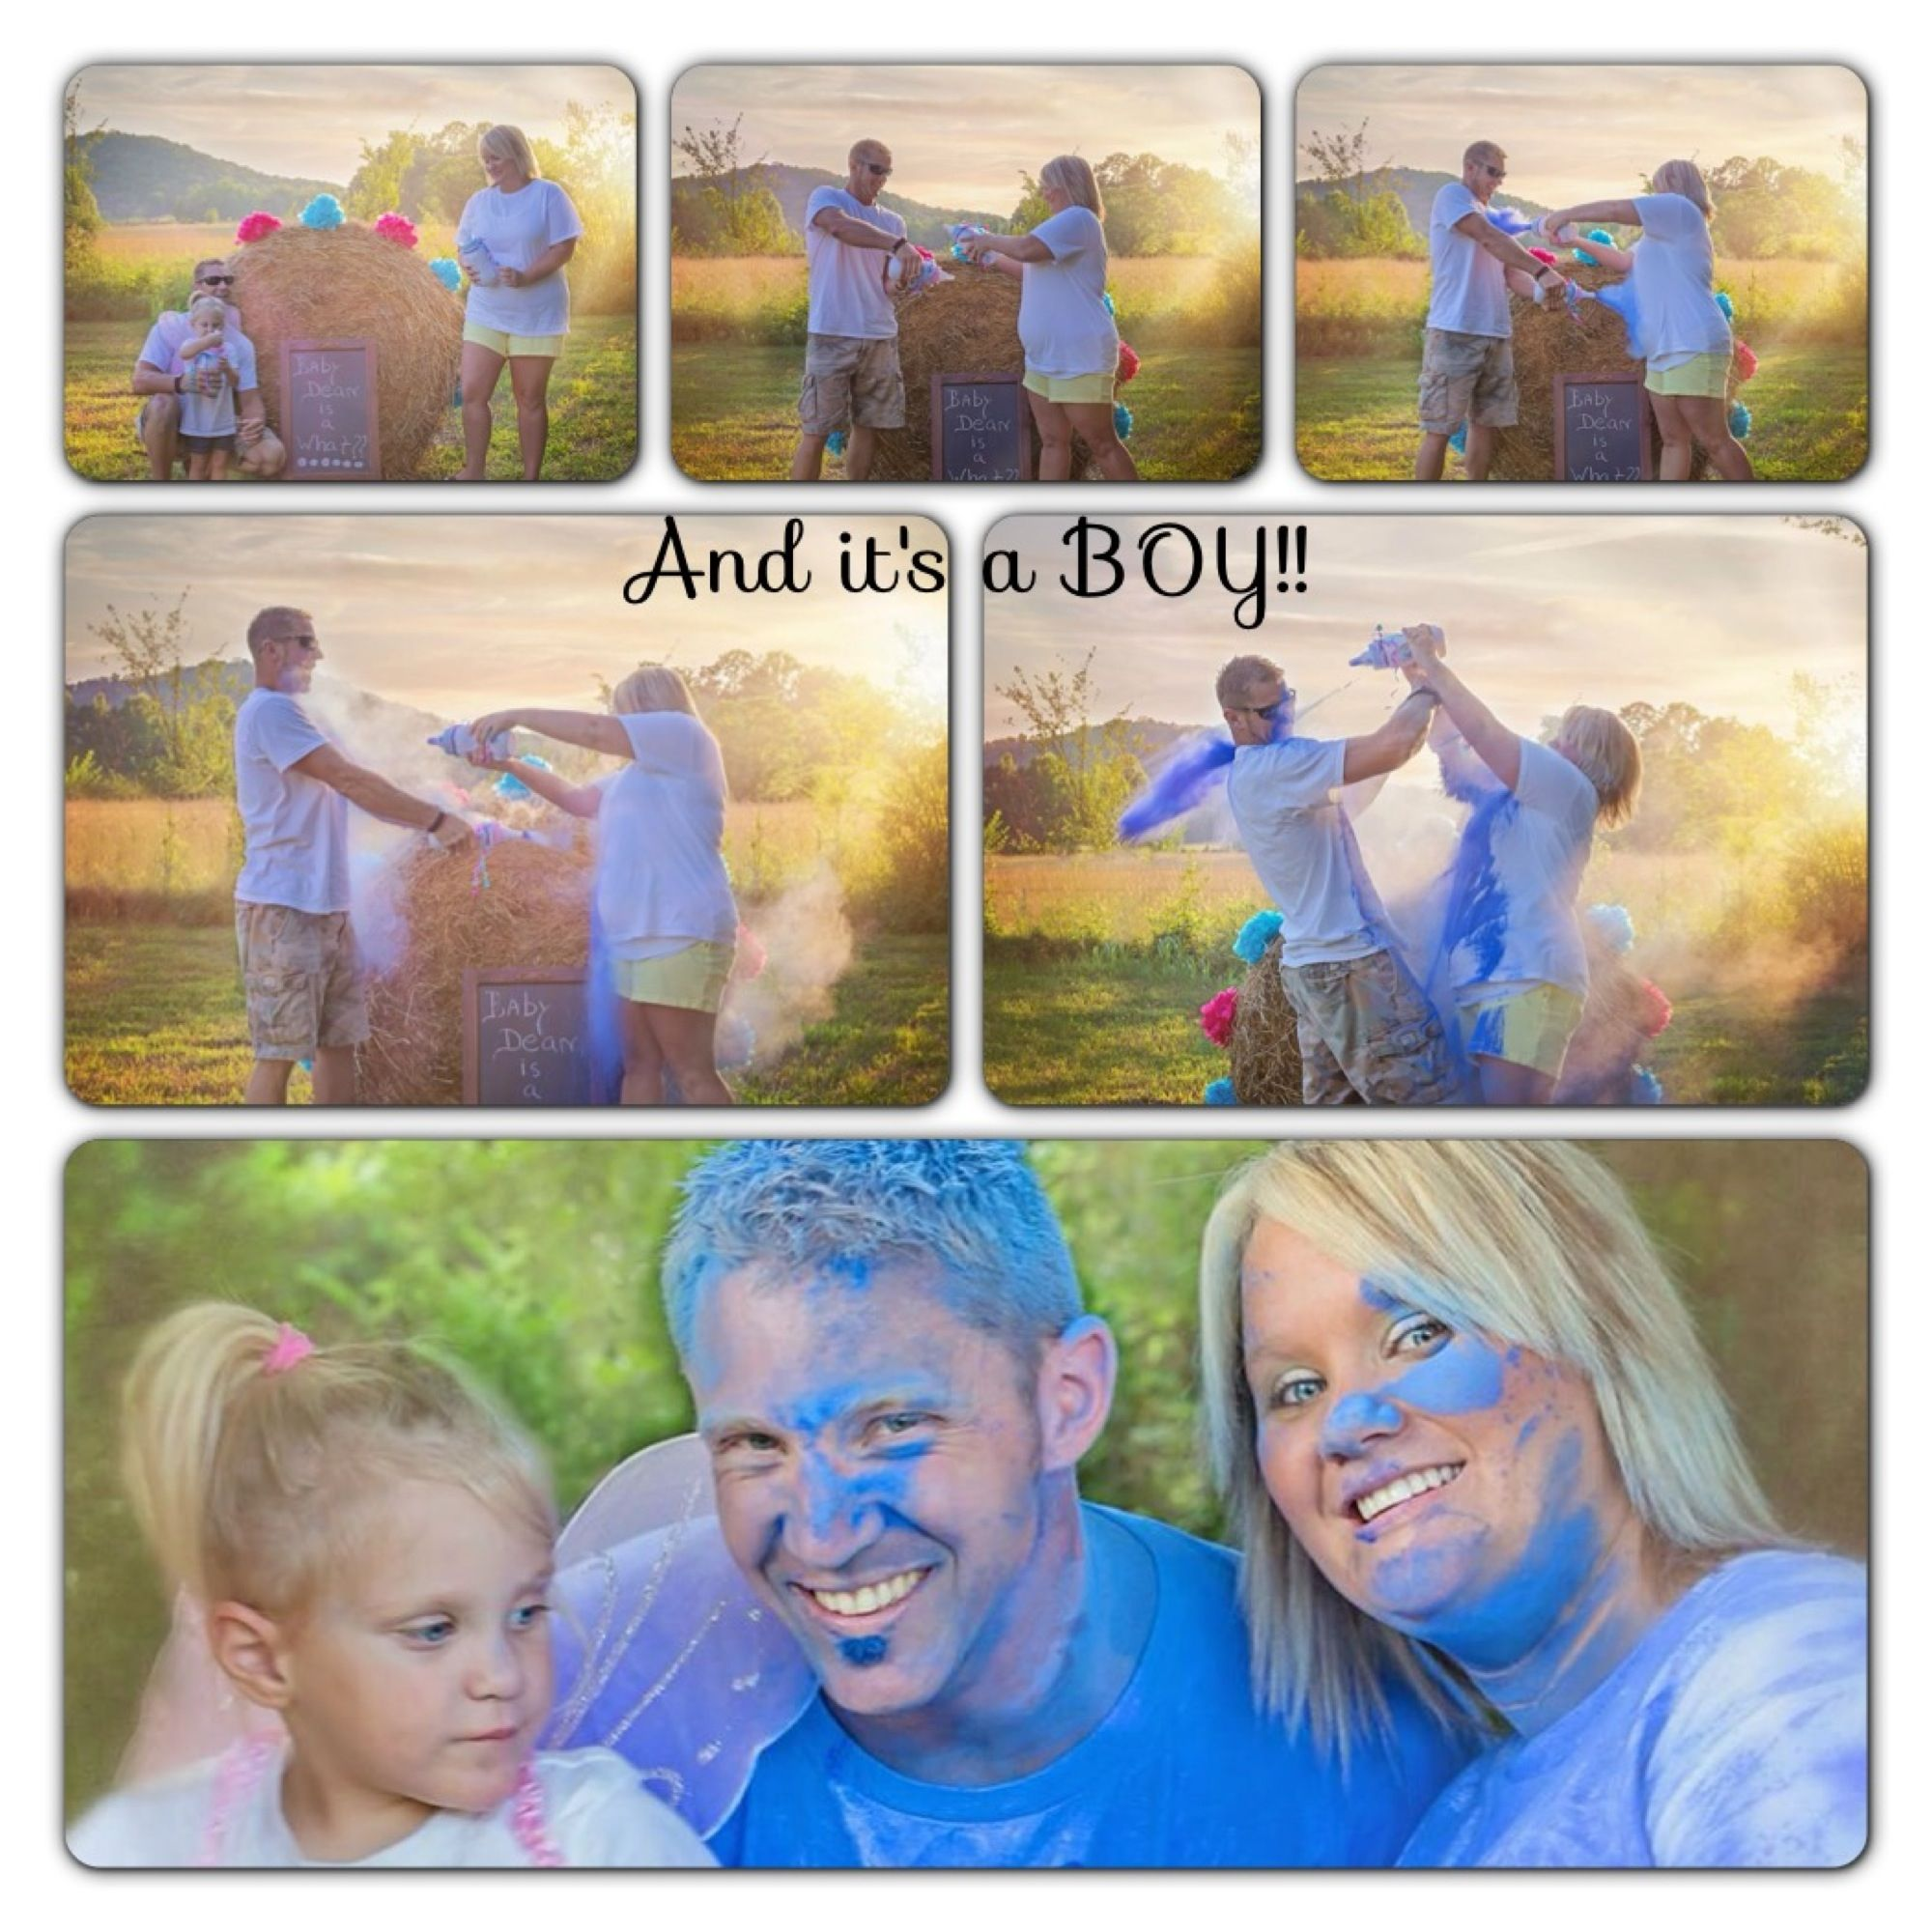 Powder Paint Gender Reveal Party What Better Way To Have Some Fun And Reveal The Gender Of Gender Reveal Photography Baby Gender Reveal Sibling Gender Reveal